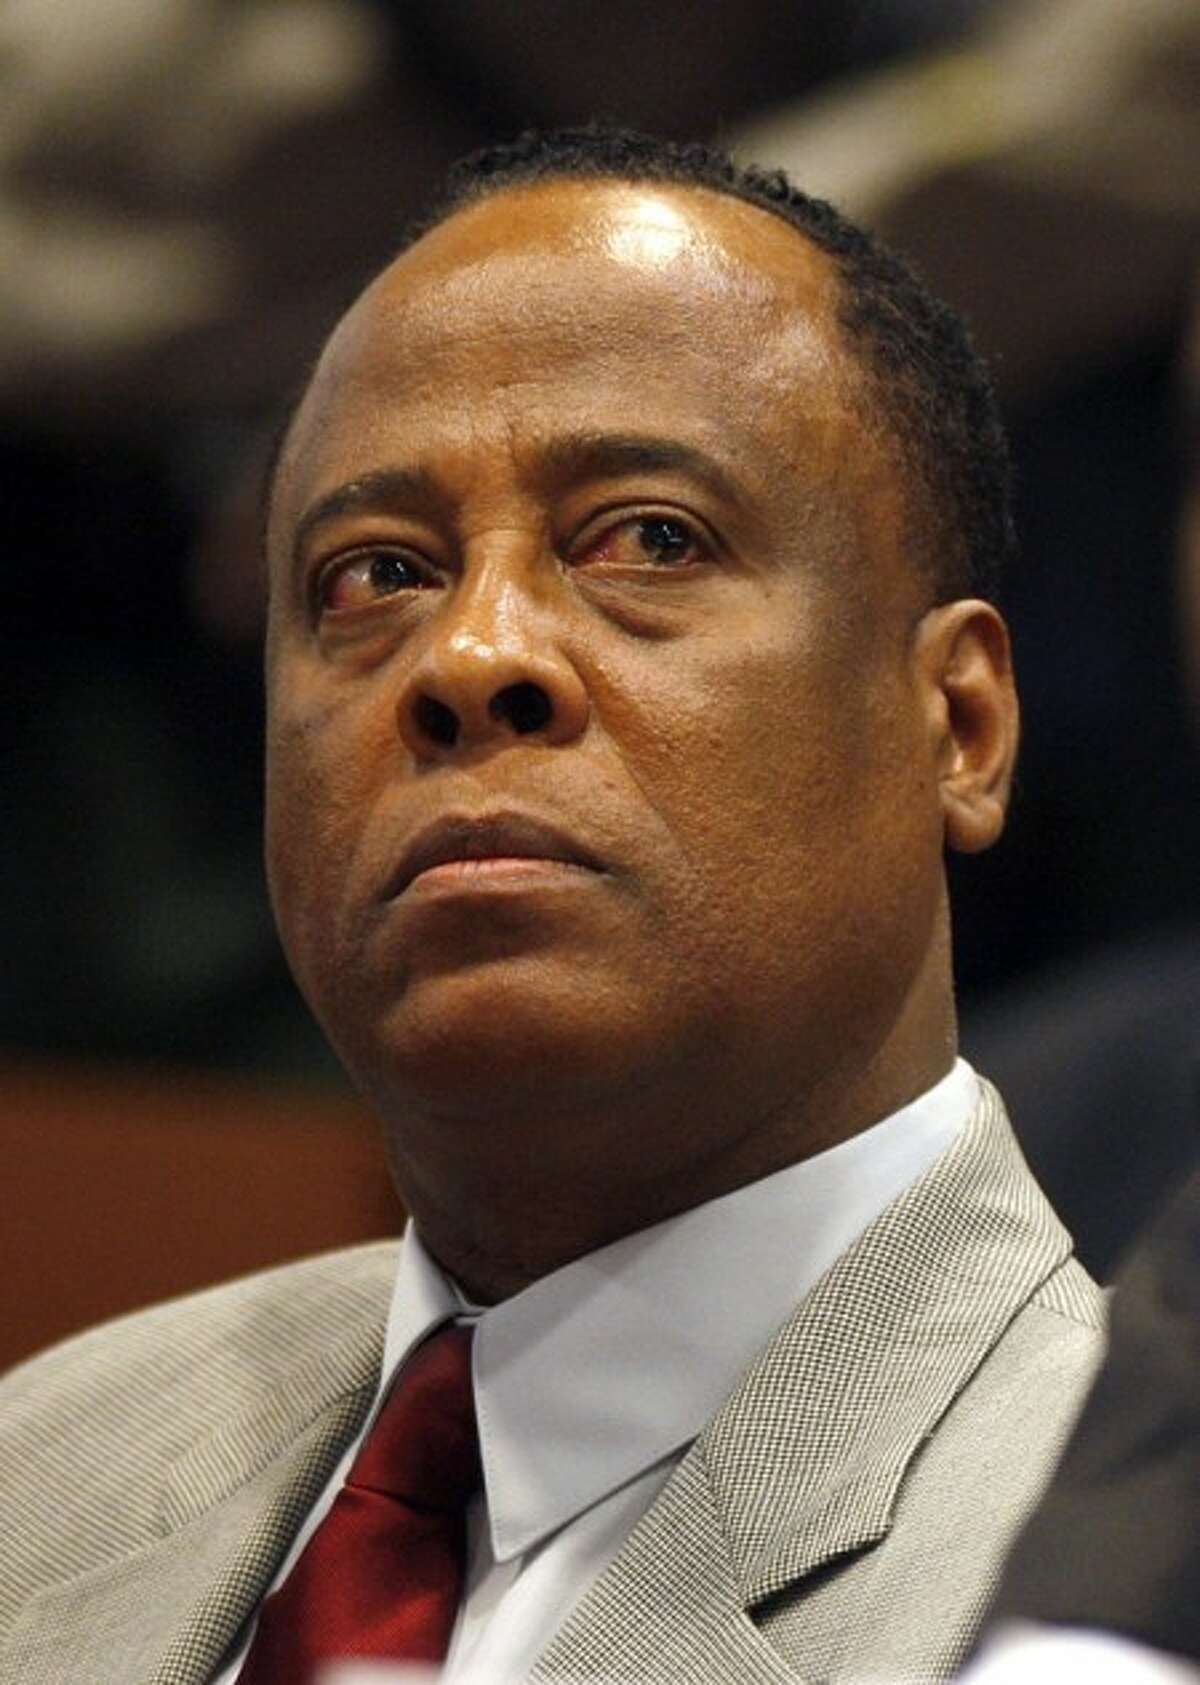 Conrad Murray, Michael Jackson''s doctor, looks on during his arraignment at the Airport Courthouse on charges of involuntary manslaughter in the singer''s death in Los Angeles on Monday, Feb. 8, 2010. (AP Photo/Mark Boster, Pool)